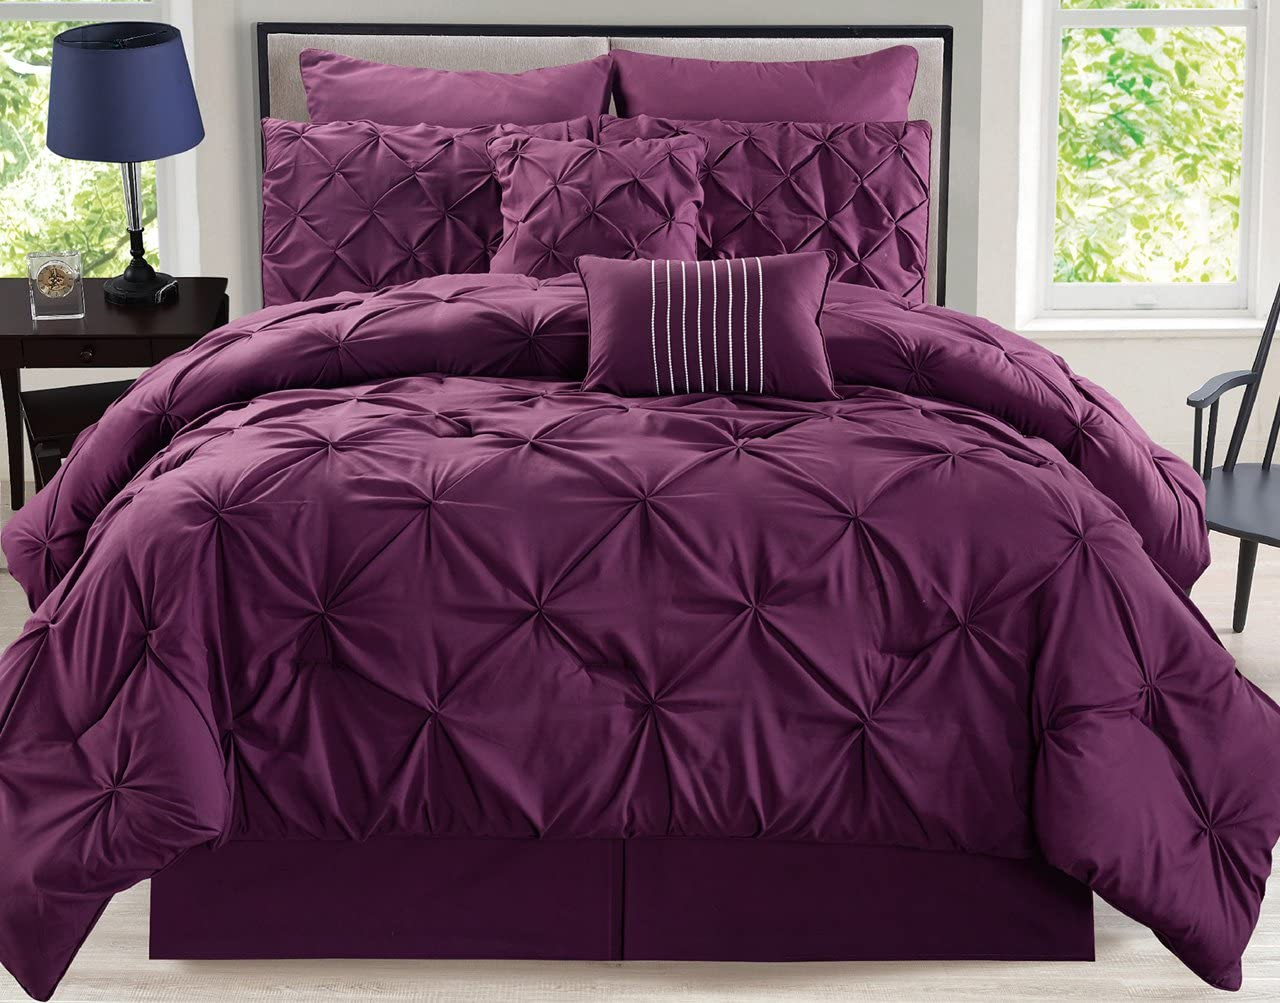 8 Piece Rochelle Pinched Pleat Plum Comforter Set King